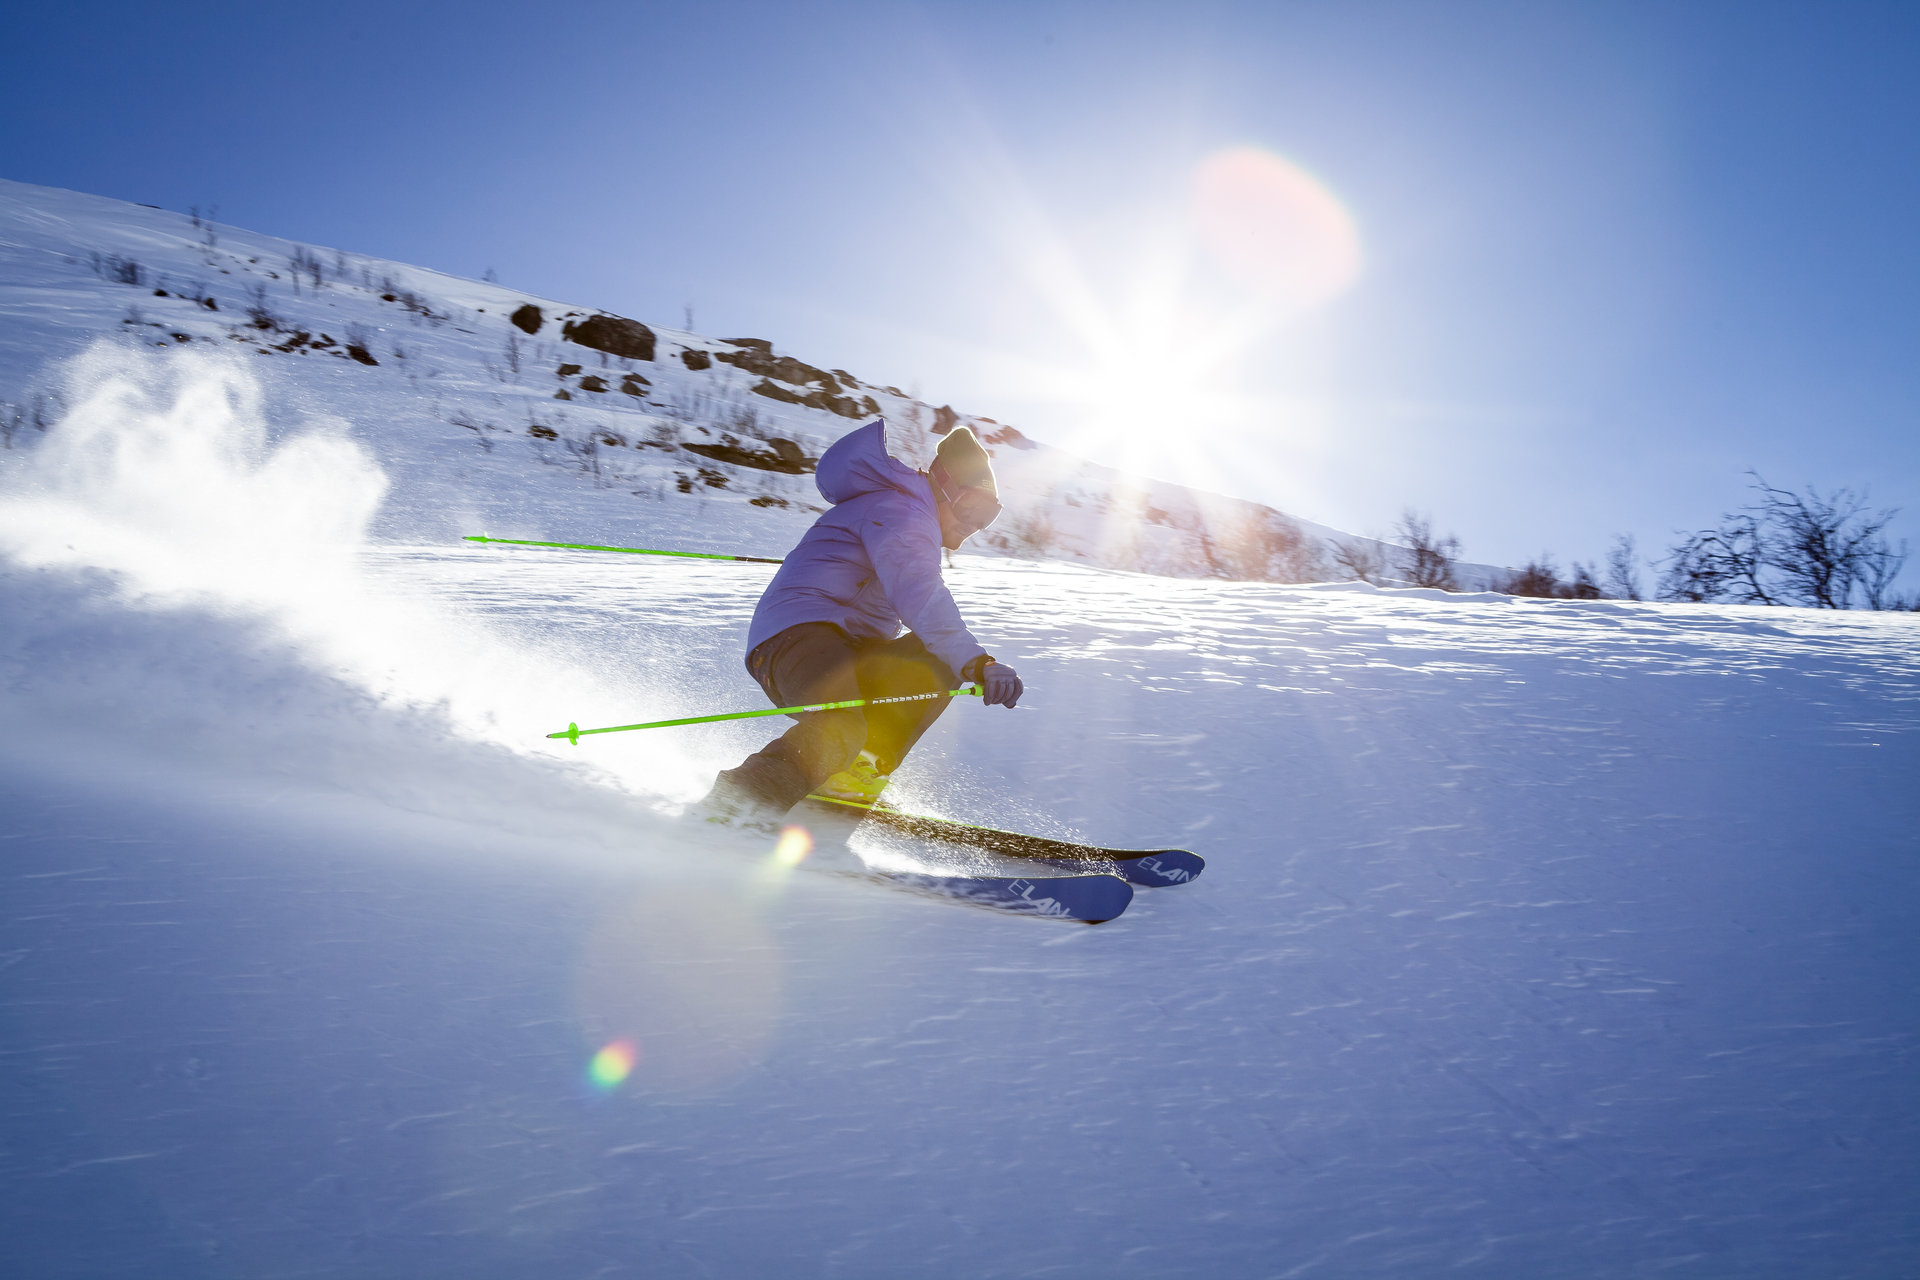 Before you venture out on a ski slope, check your fitness